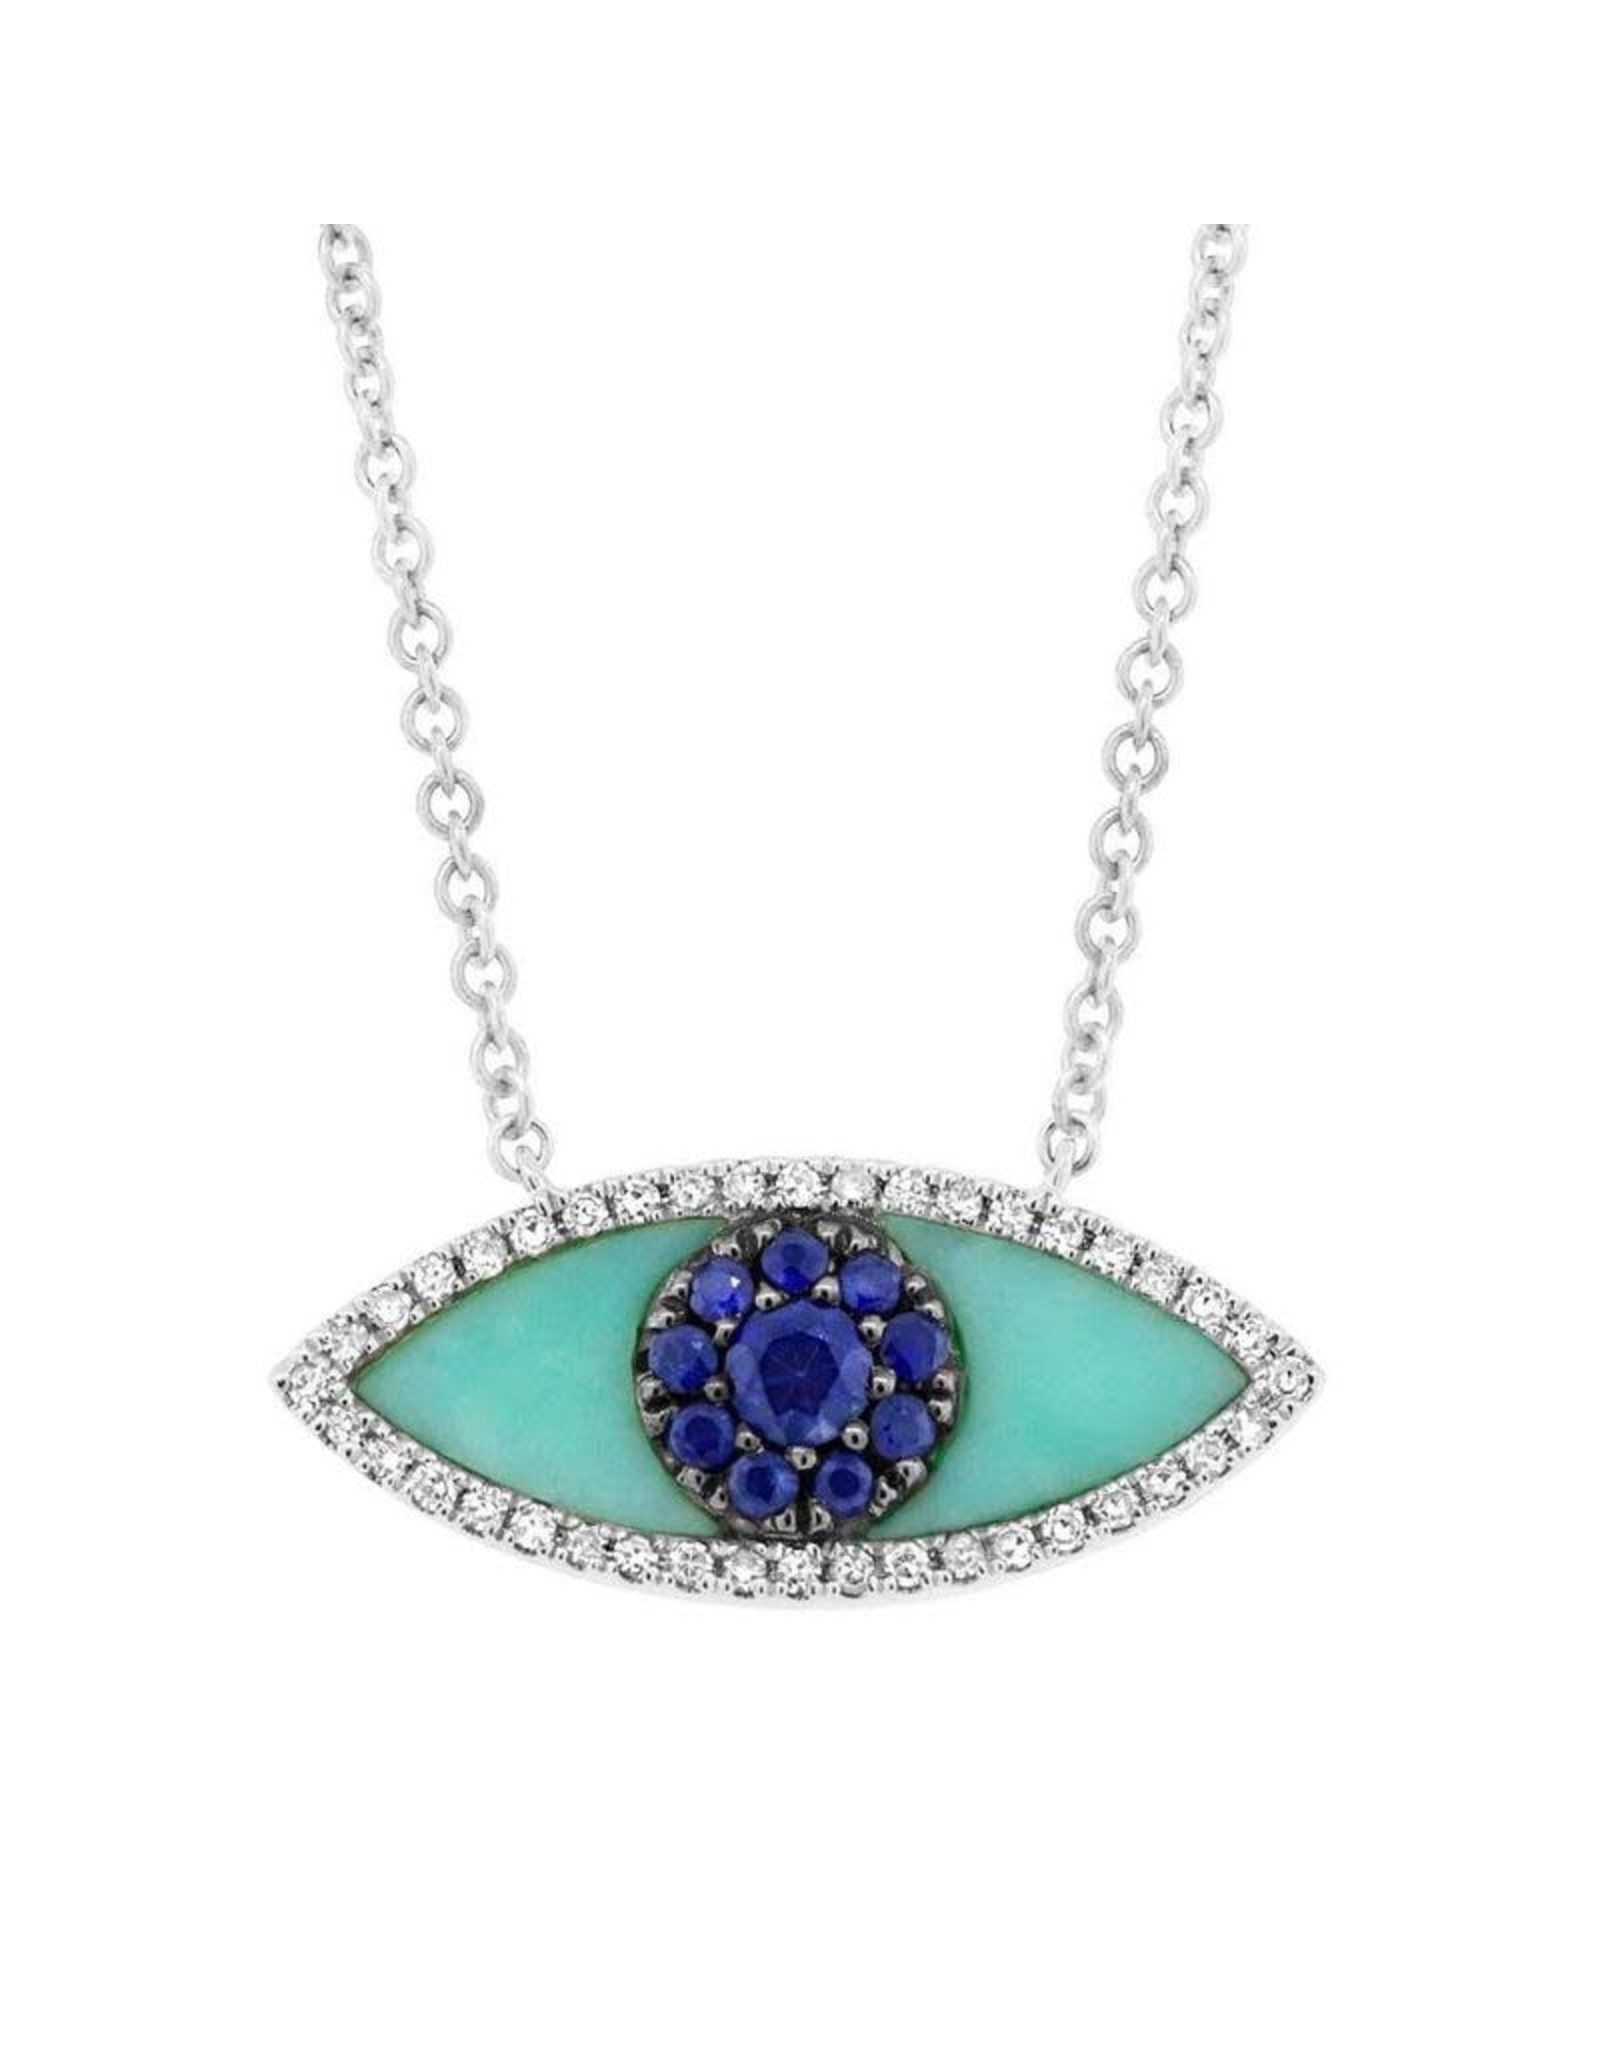 14K White Gold Turquoise, Blue Sapphire and Diamond Evil Eye Necklace,  D: 0.09ct, S: 0.65ct